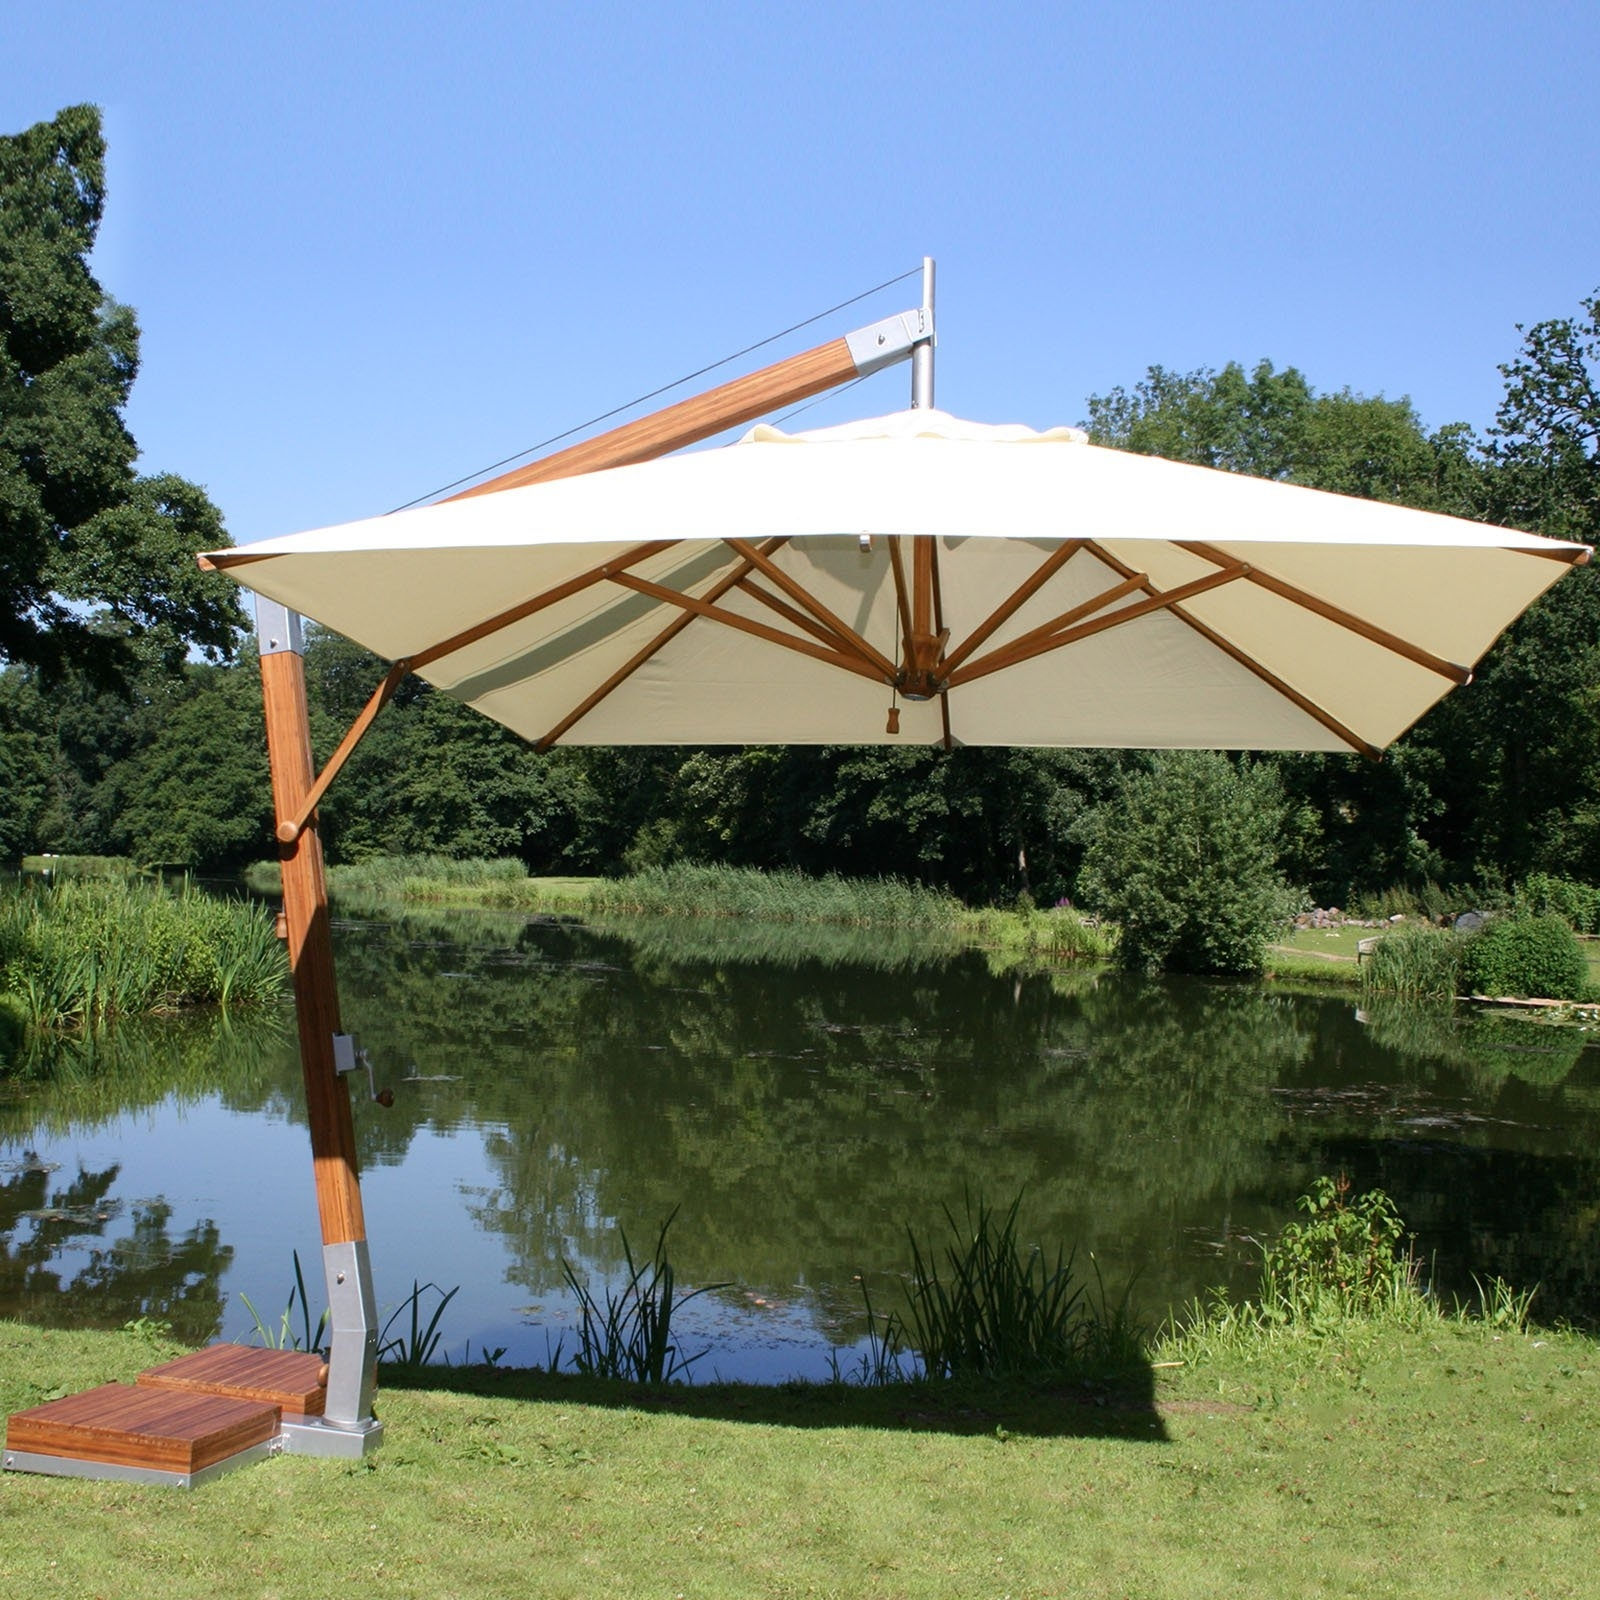 Current Offset Rectangular Patio Umbrellas Pertaining To Inspirations: Offset Umbrella Clearance For Appealing Patio (View 19 of 20)